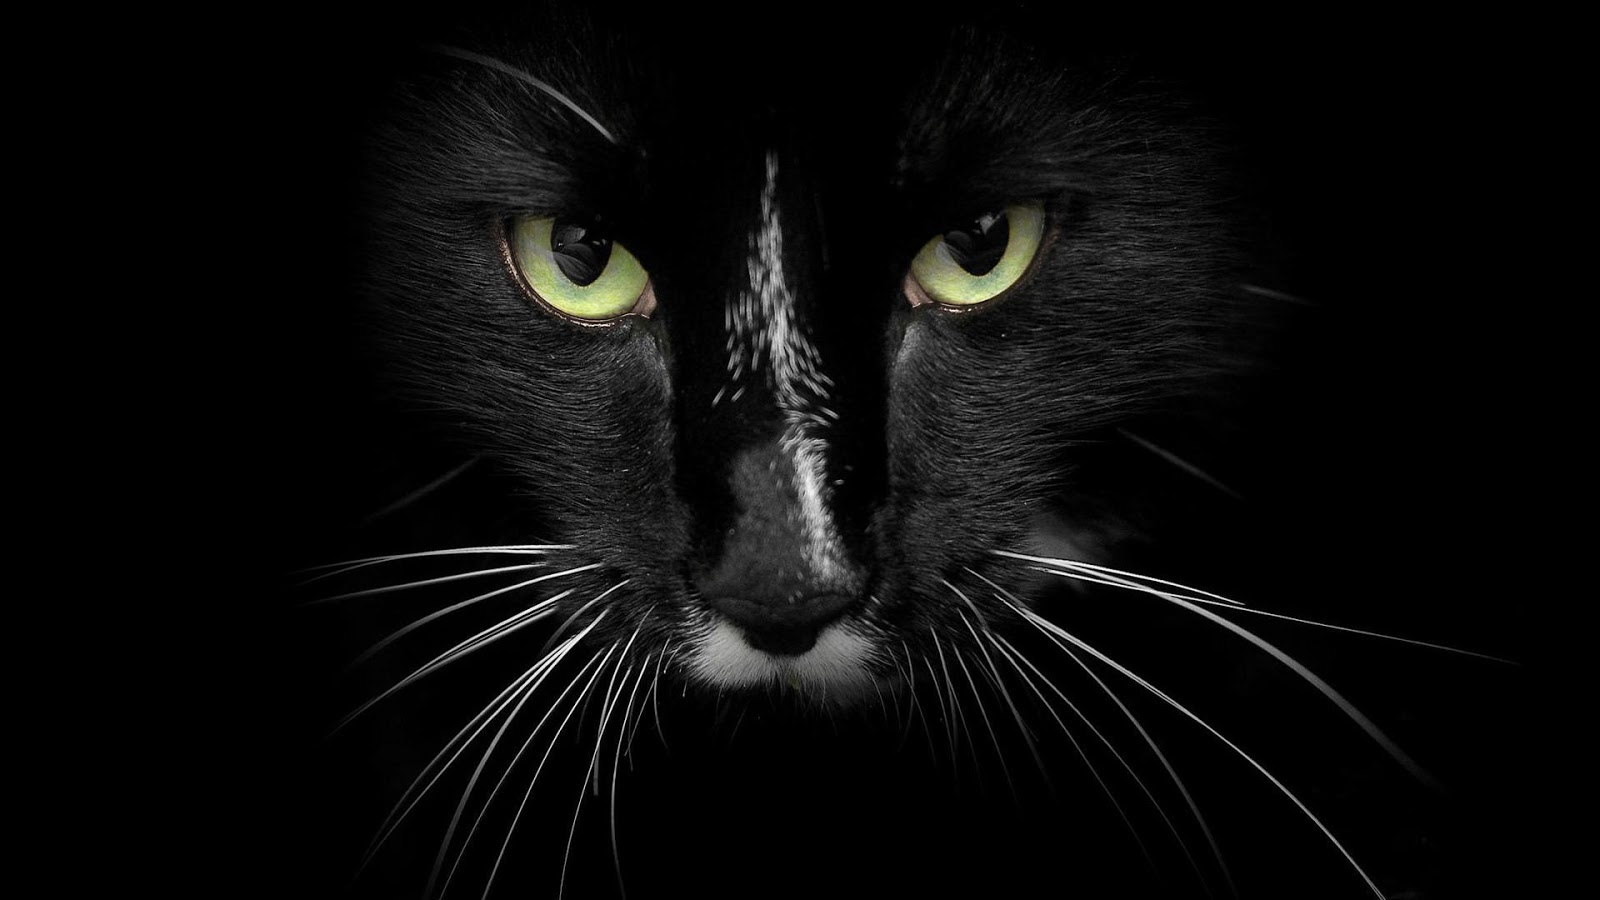 Black Cat HD Wallpaper  All the Latest and Exclusive HD Wallpapers